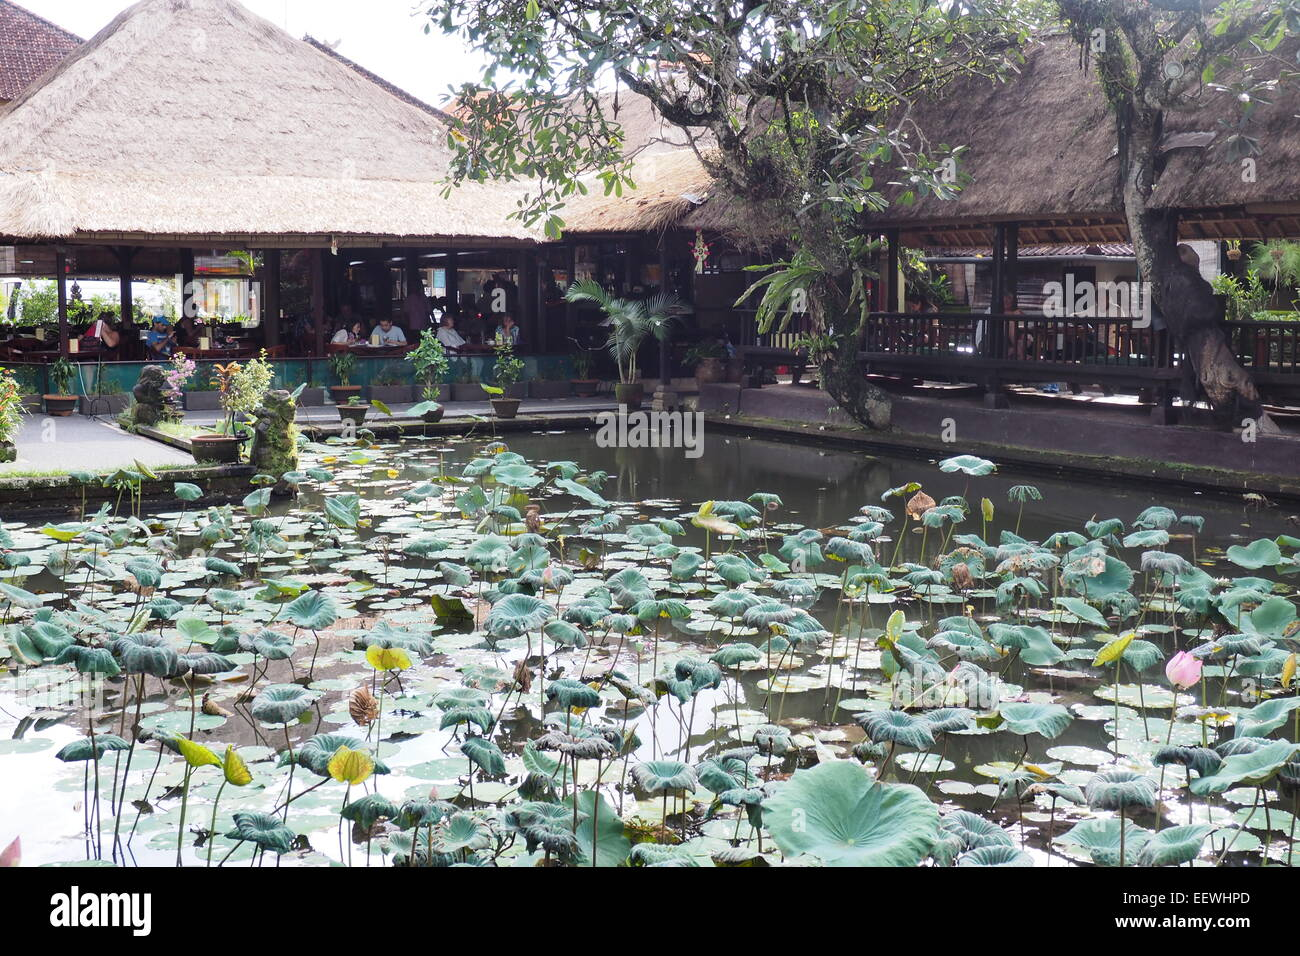 Lotus cafe and Lotus pond situated in front of the Pura Taman Saraswati, Ubud, Bali. - Stock Image